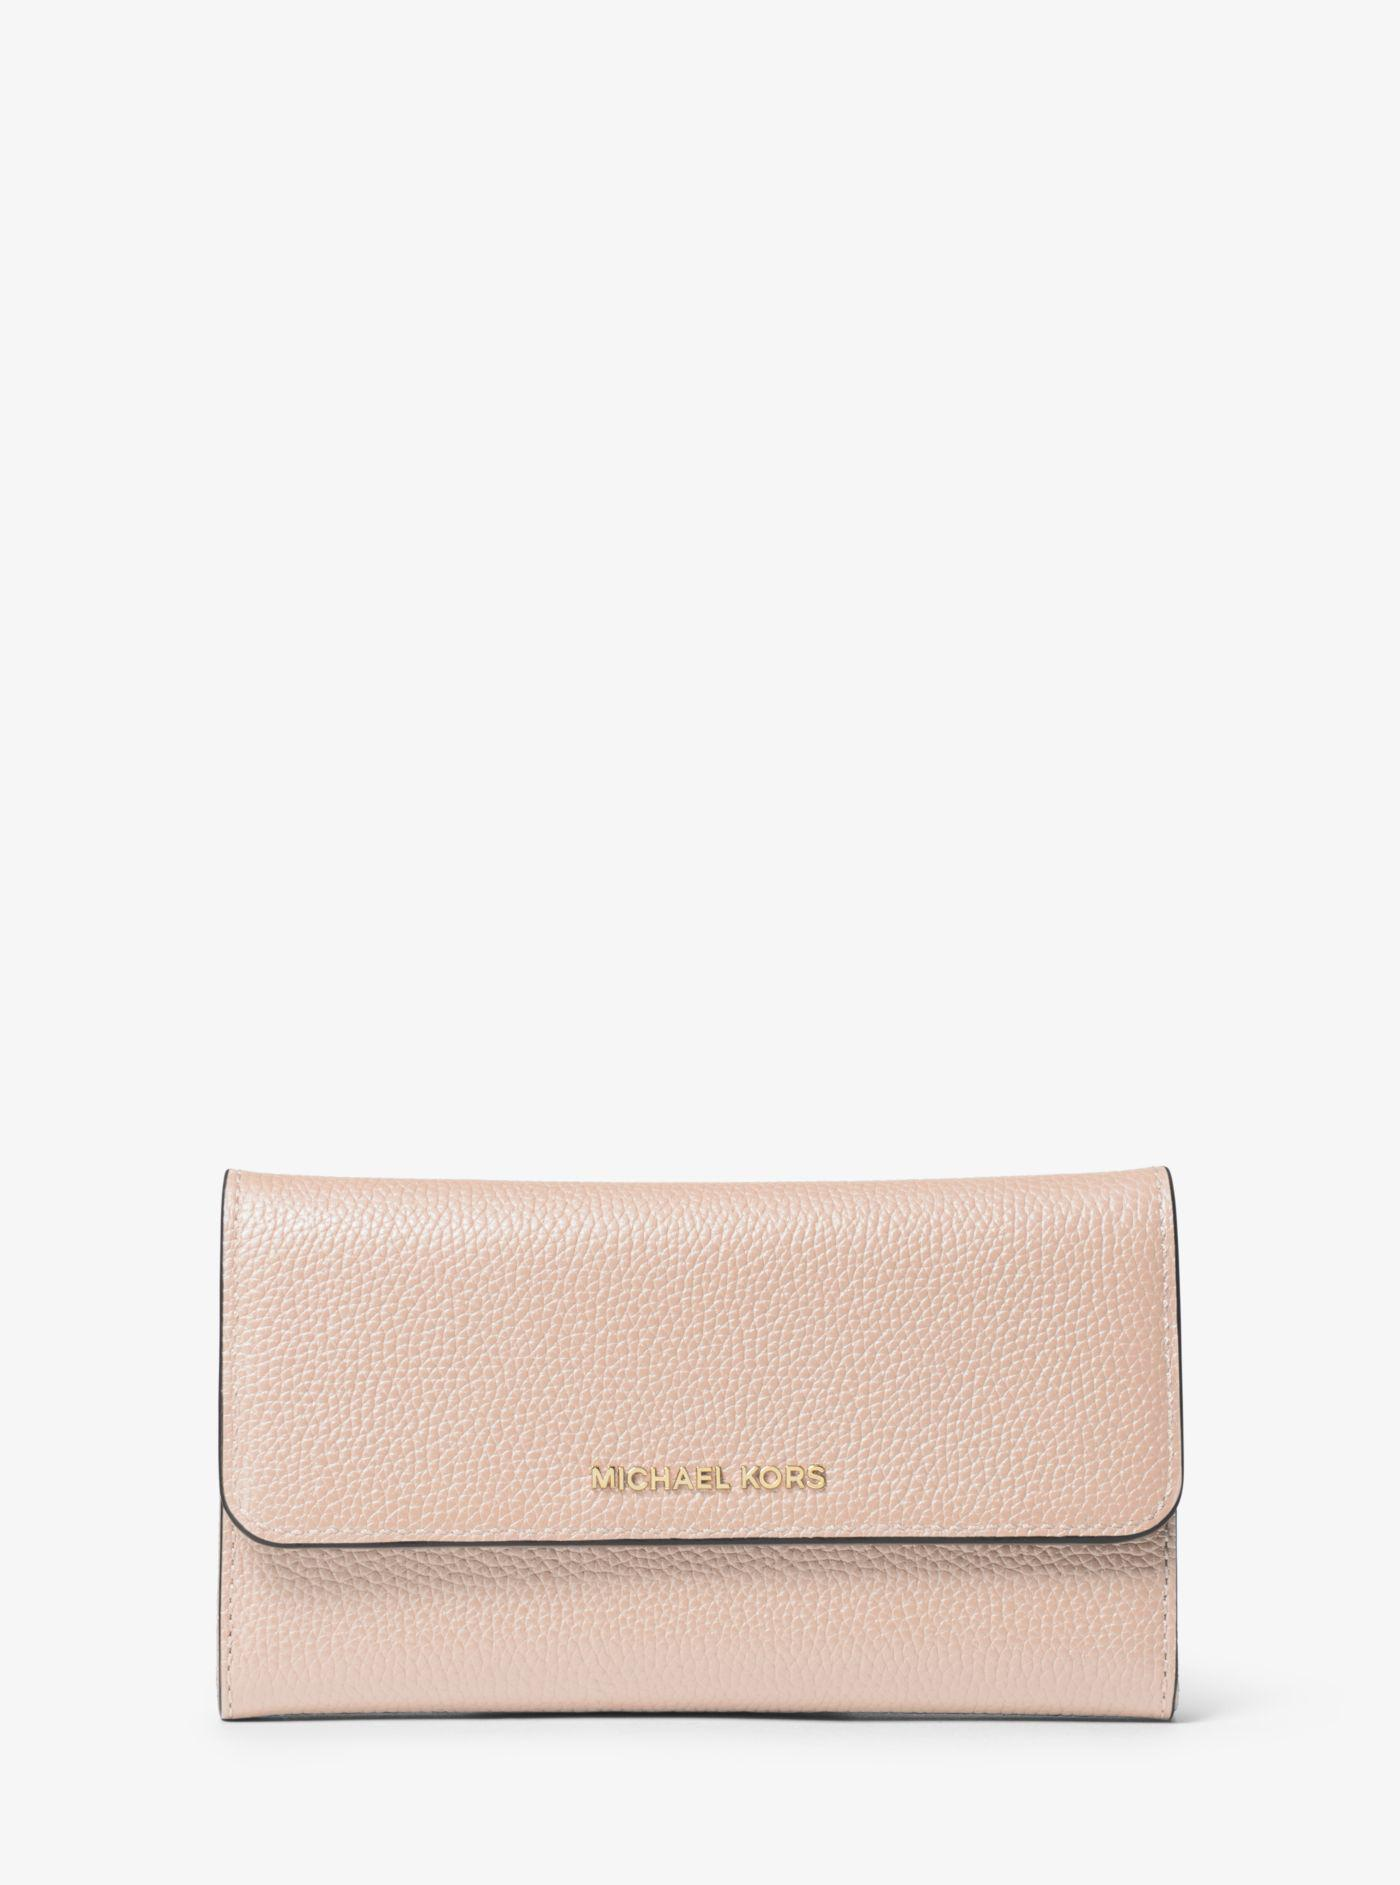 14b3583ba68a28 Michael Kors - Pink Tri-fold Leather Wallet - Lyst. View fullscreen